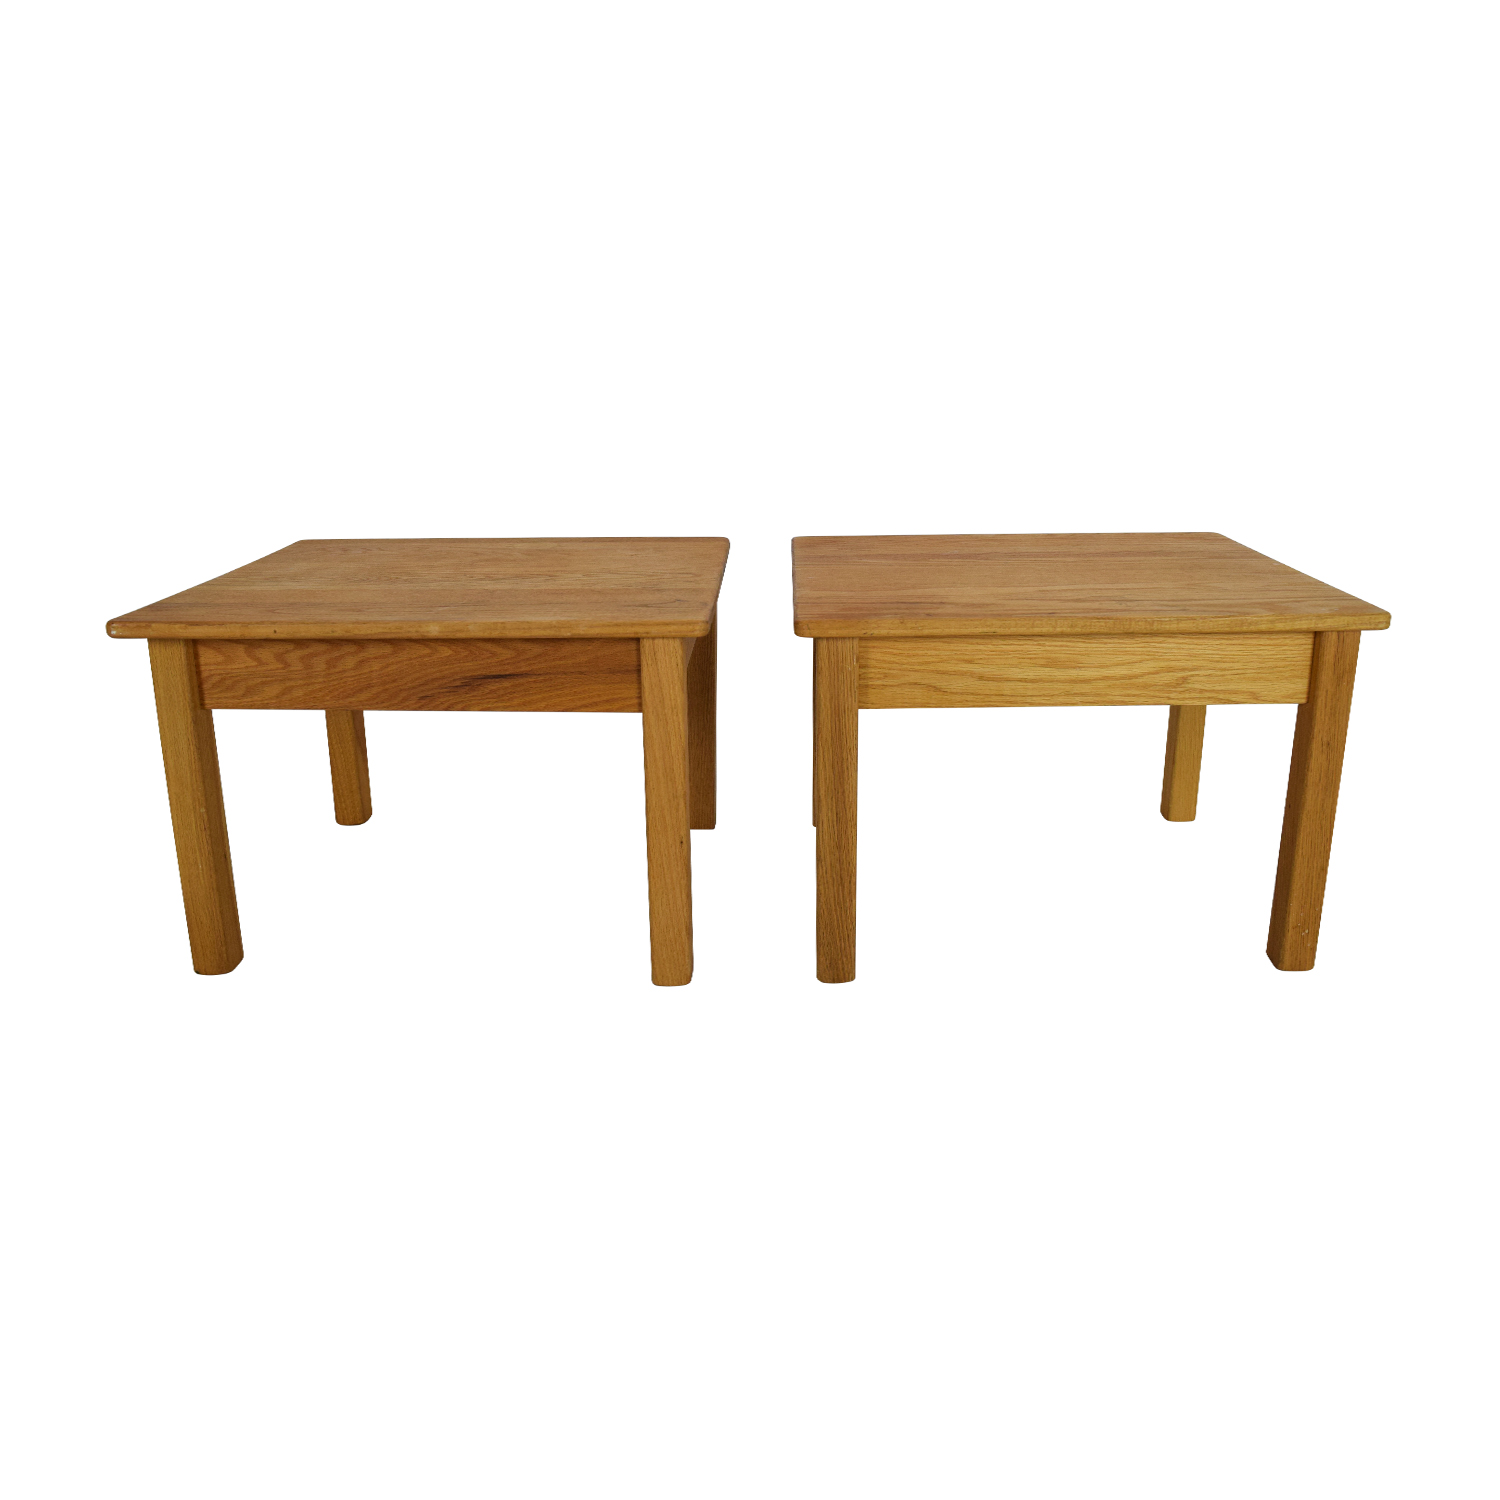 Unknown Brand Natural Wood Twin End Tables for sale